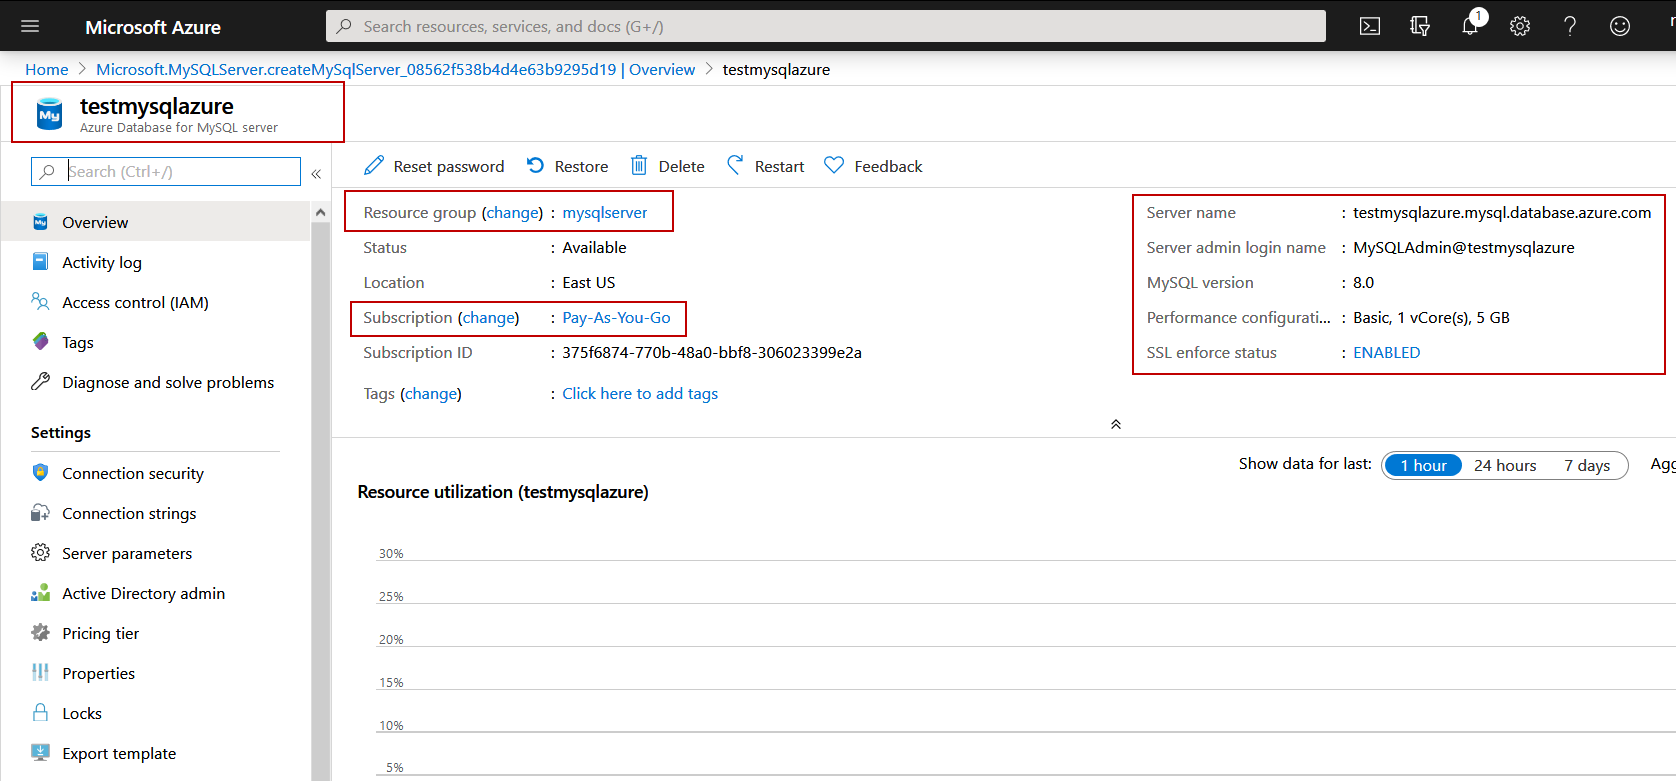 View Azure database for MySQL Server configuration